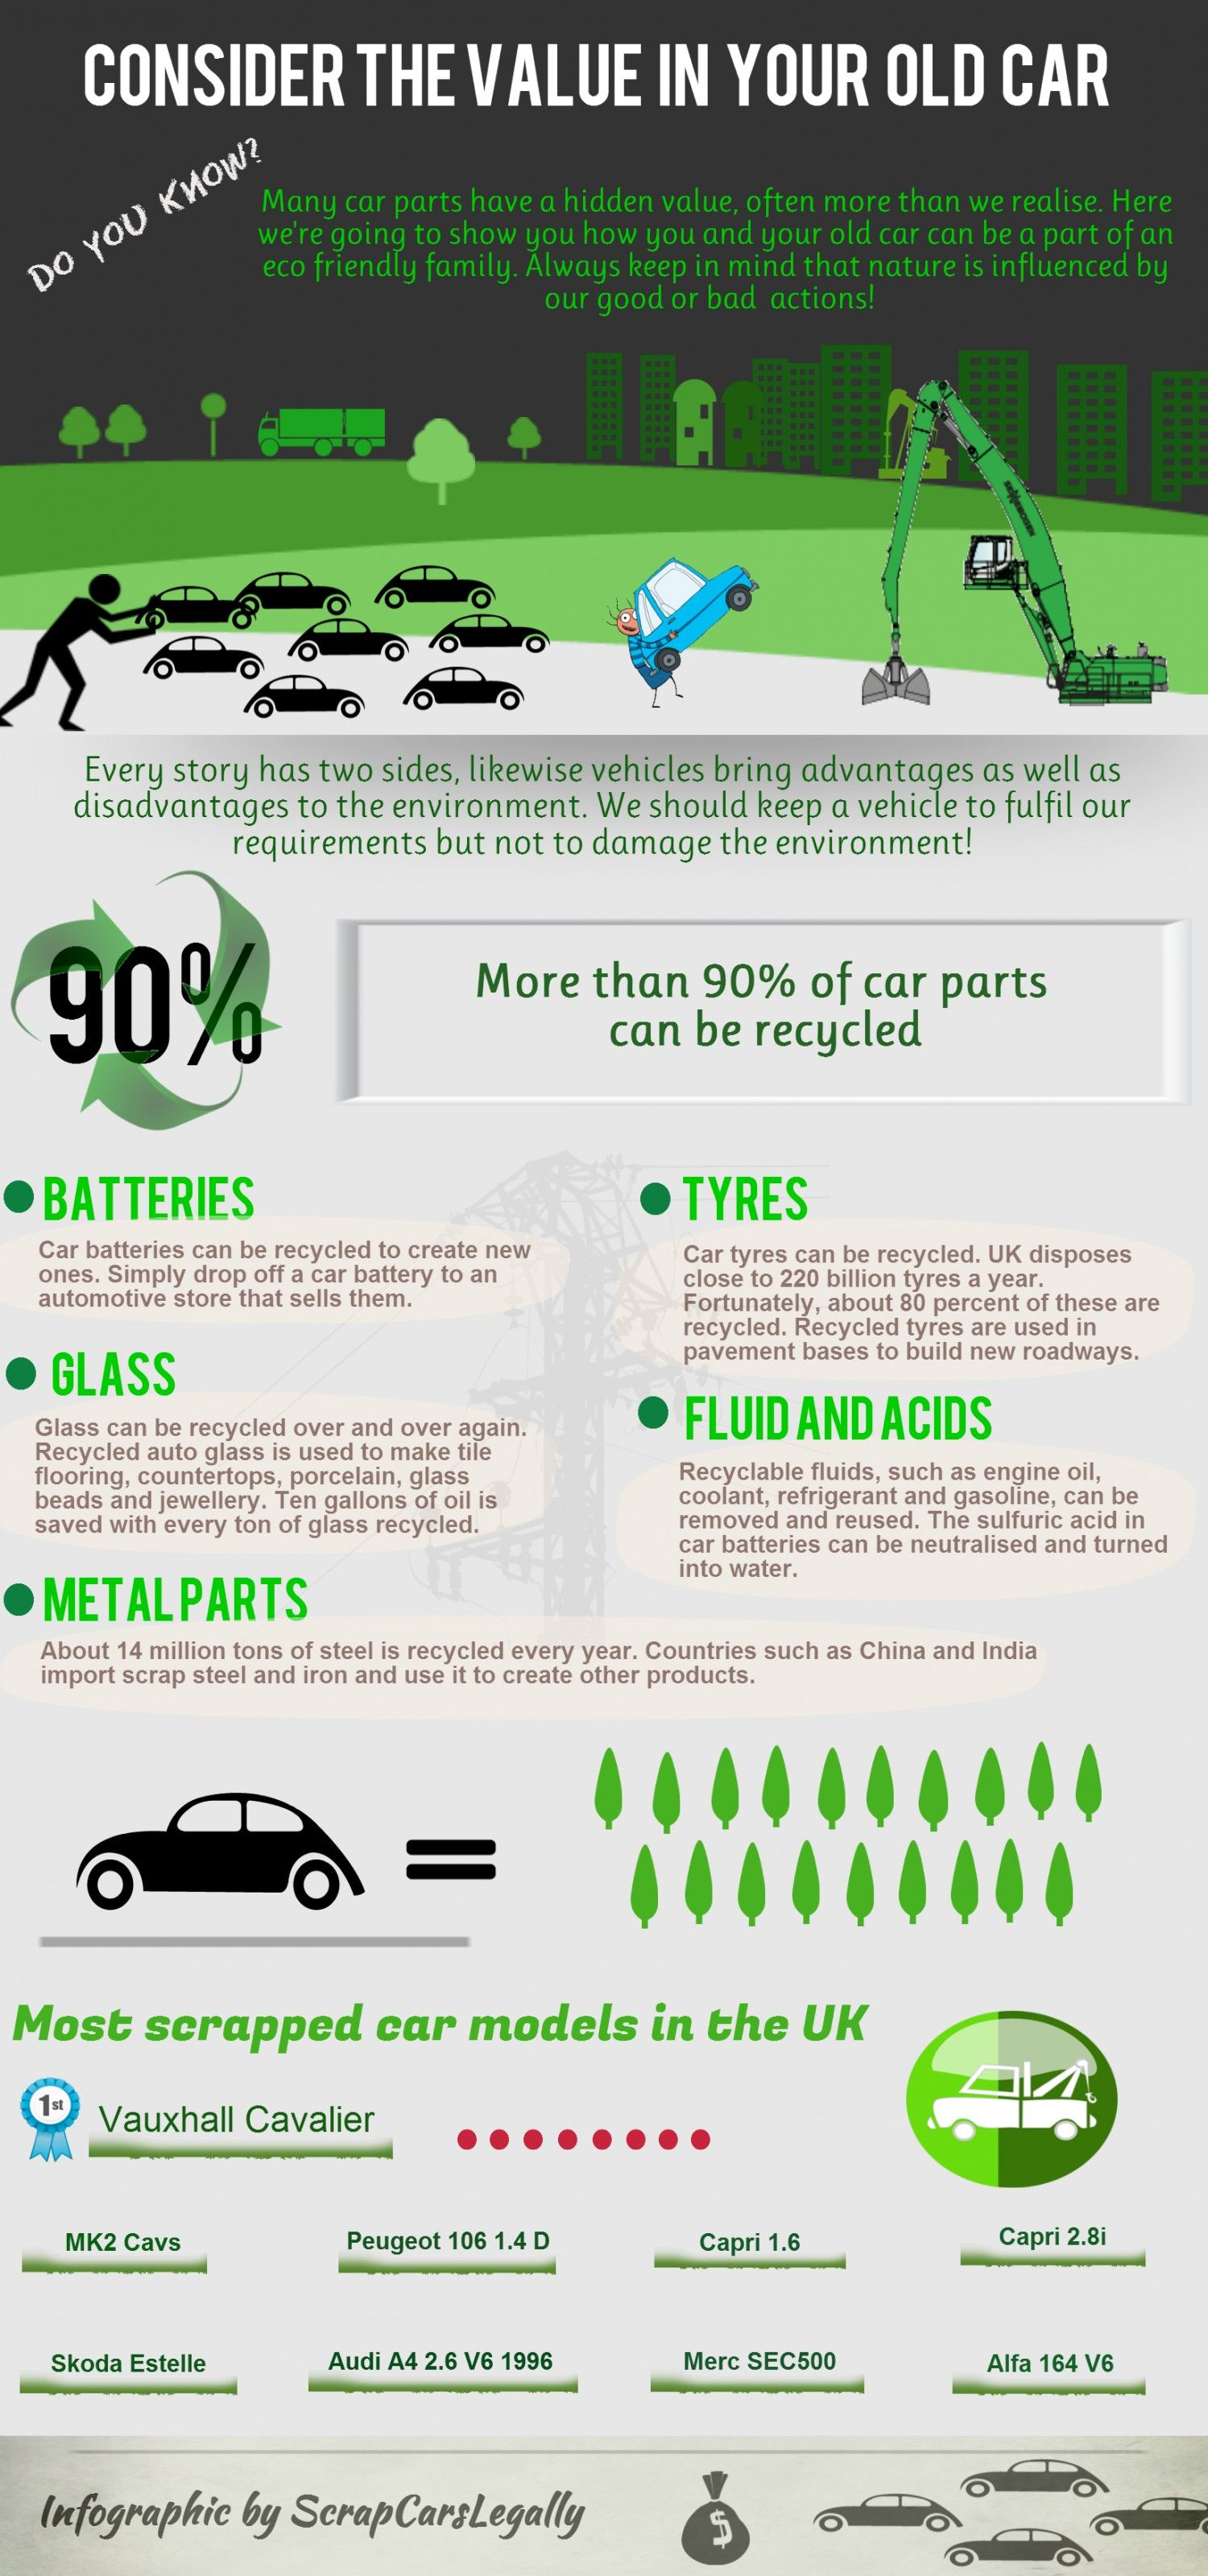 CONSIDER THE VALUE IN YOUR OLD CAR #infographic | Car and motor ...